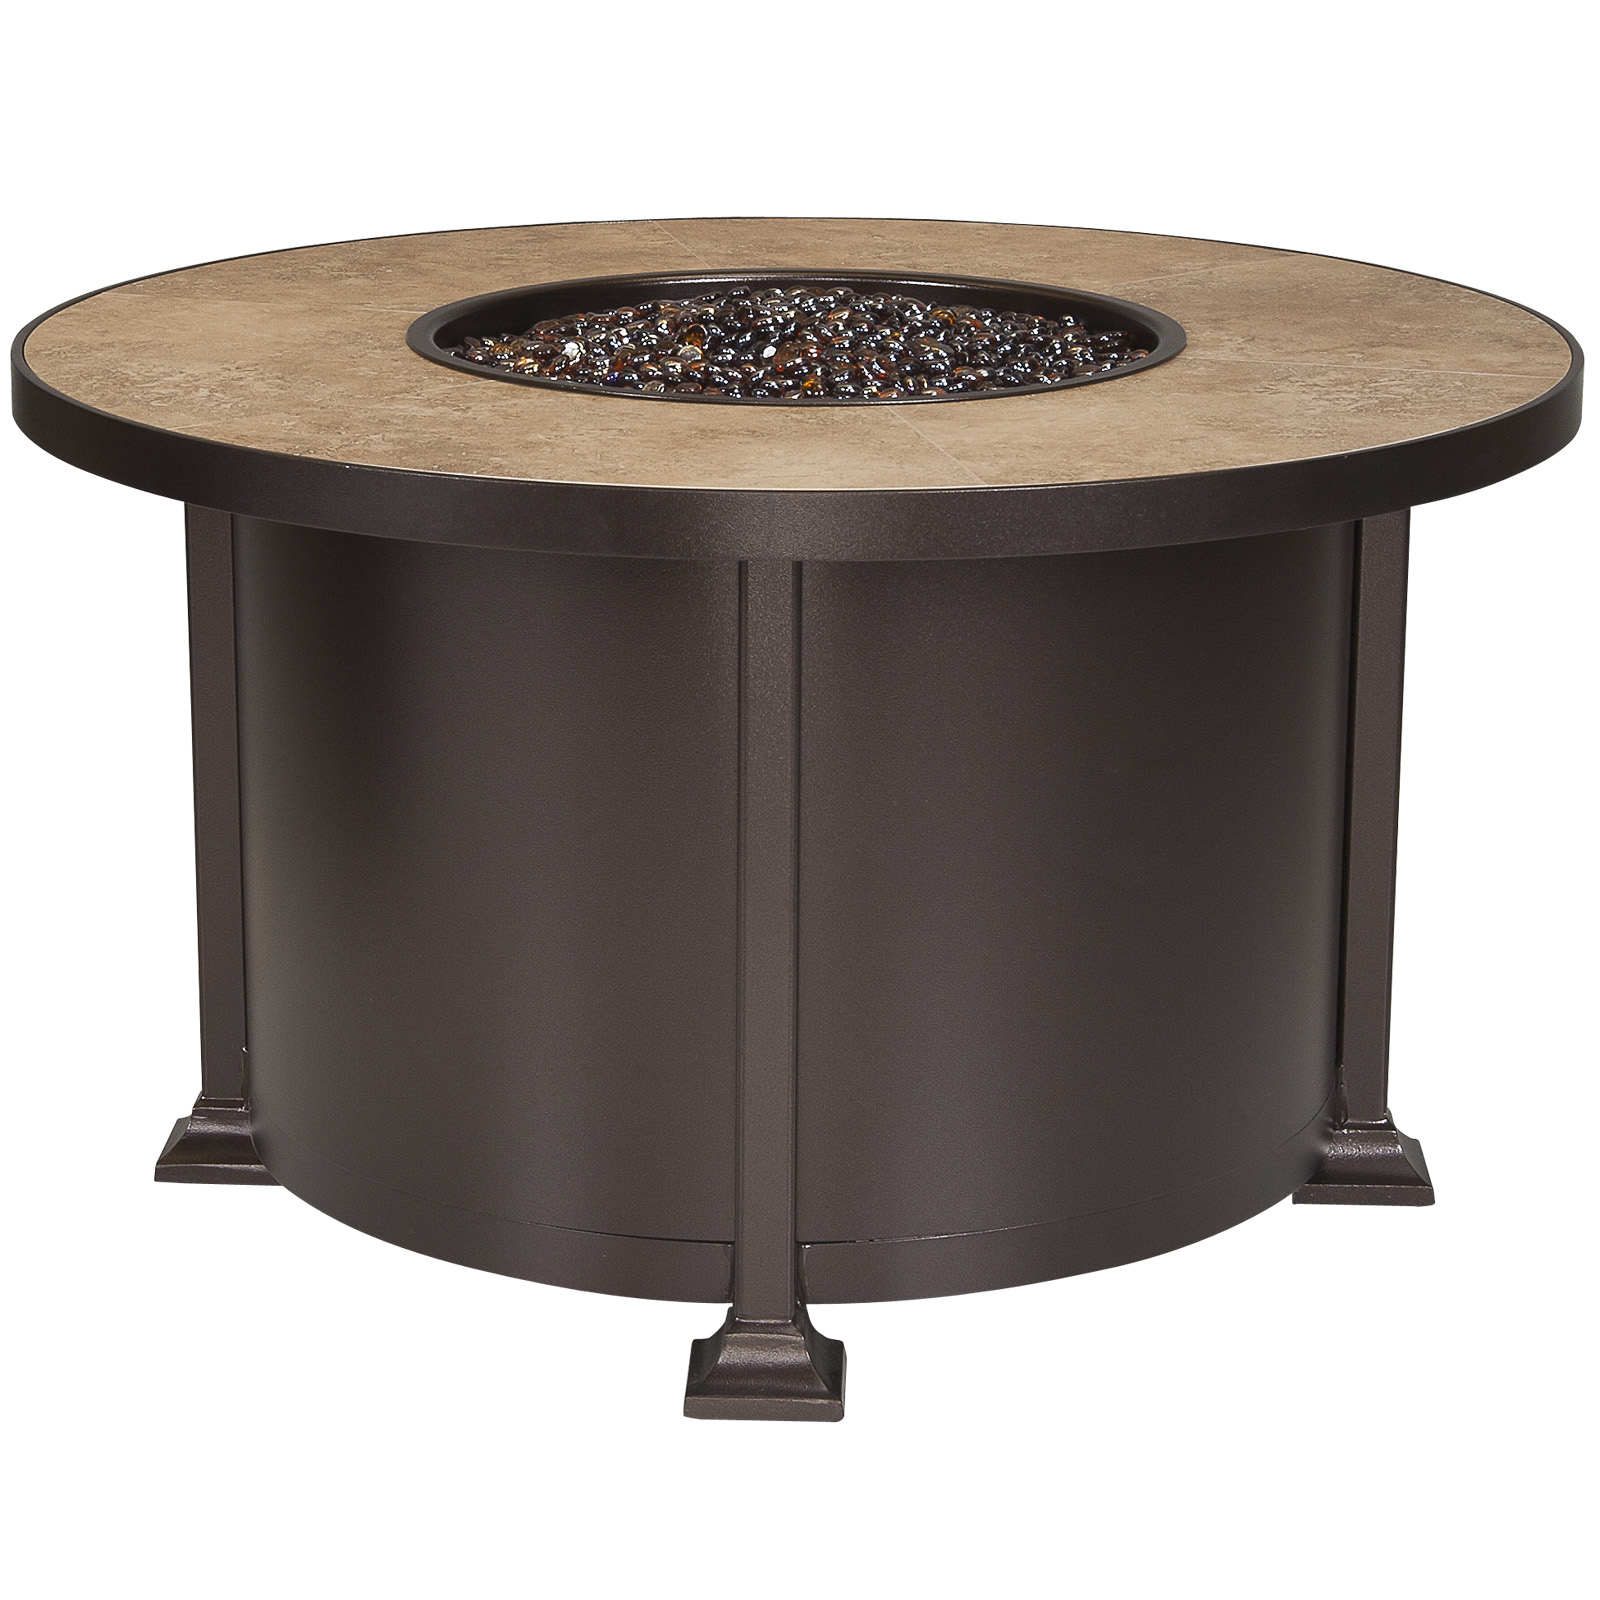 "OW Lee Vulsini 42"" Round Chat Height Fire Pit Table - 5120-42RDC"